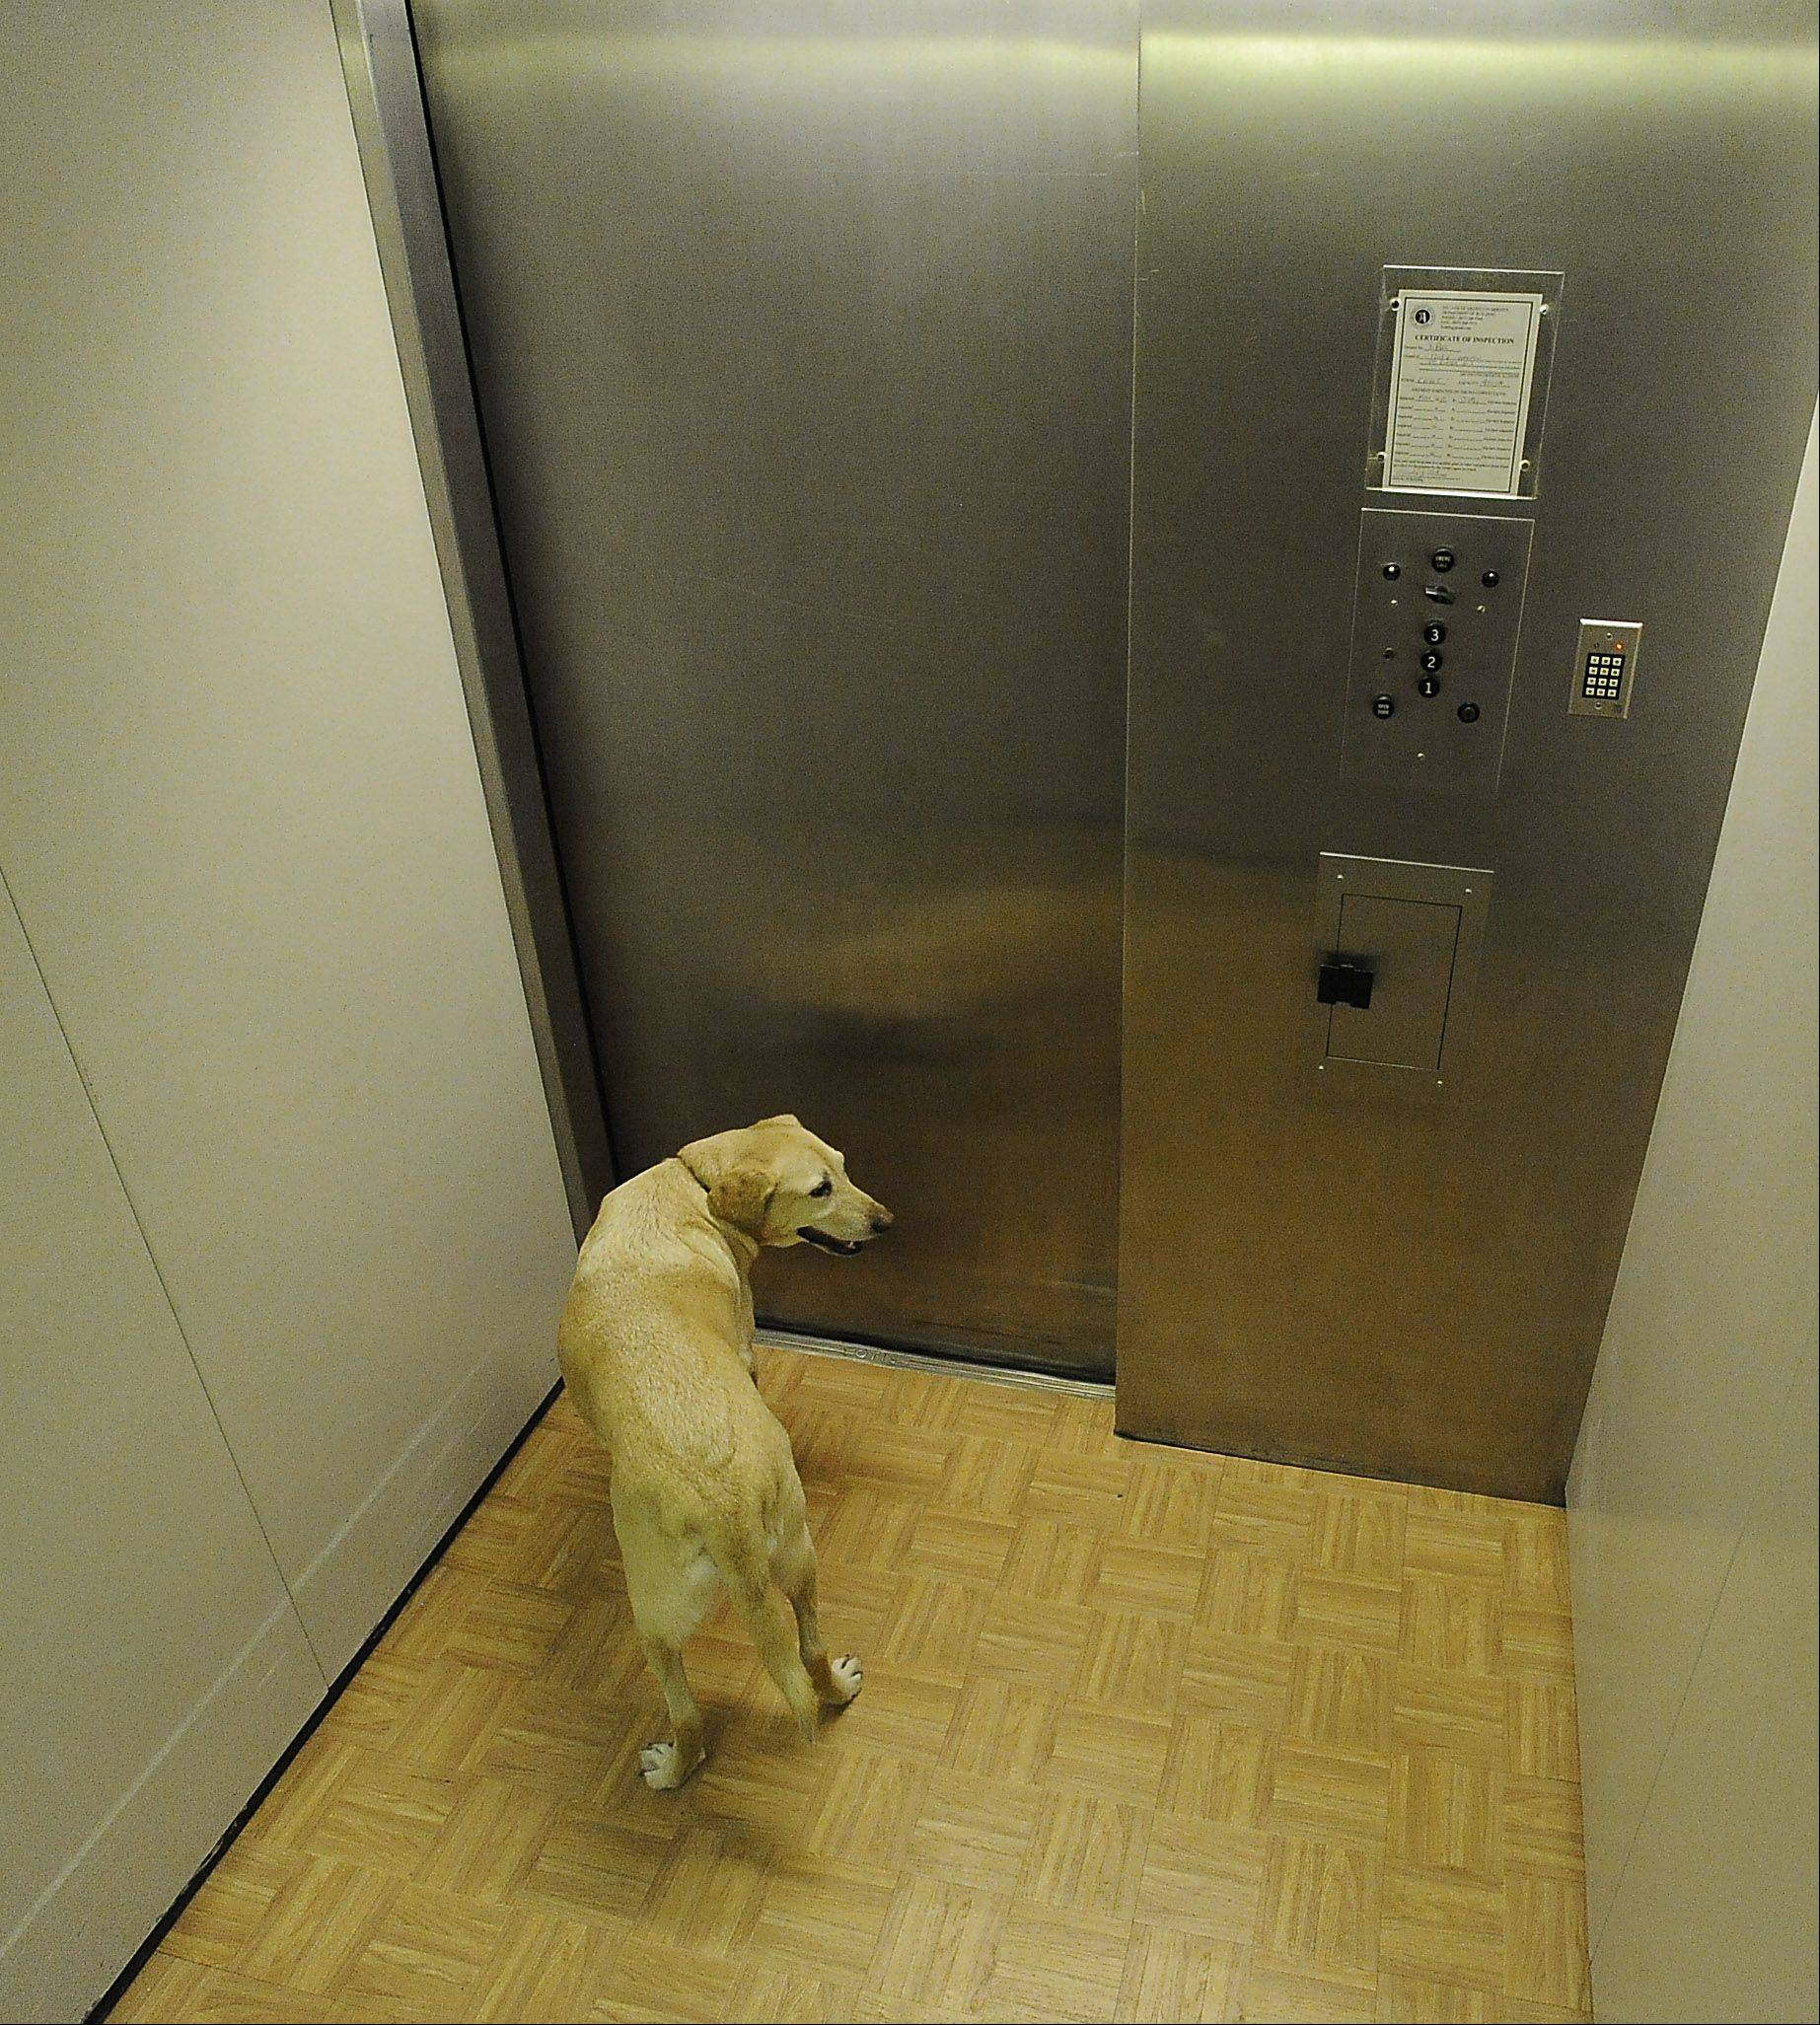 Archie looks around the elevator as he heads by himself to the third floor living quarters, something he does every day of the week.